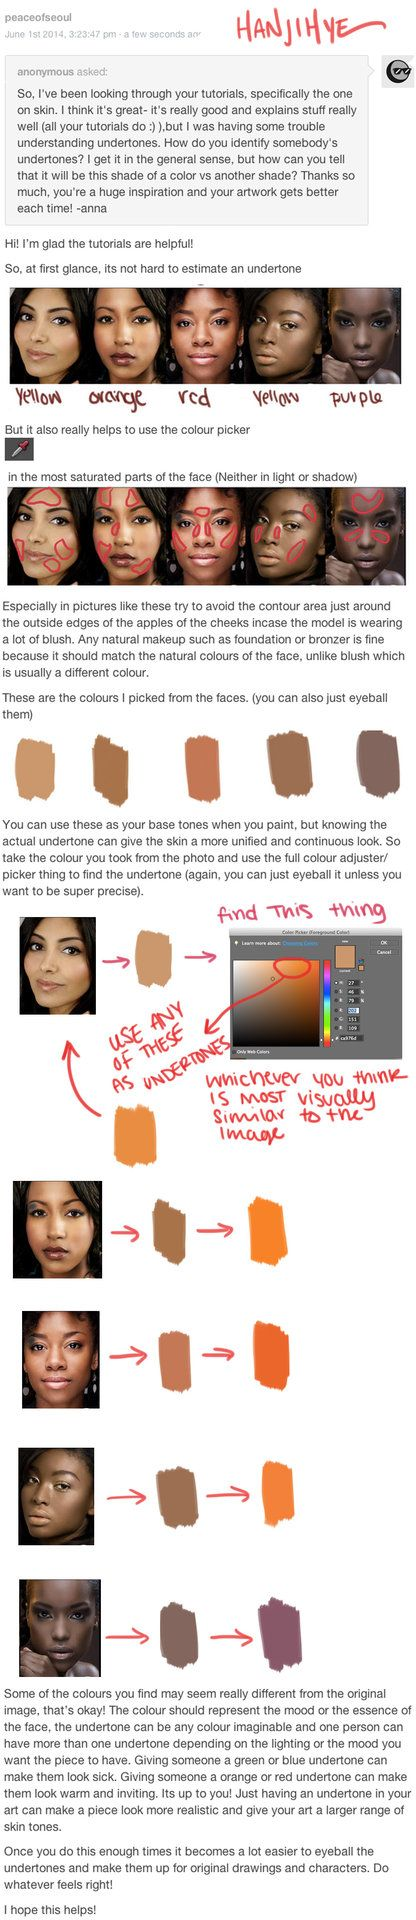 I tried my best to be helpful! Leave any questions in the comments and I'll try to answer them for you! Skin Tones Tutorial:  art tumblr- peaceofseoul.tumblr.com/ tumblr- redhan.tumblr.com/